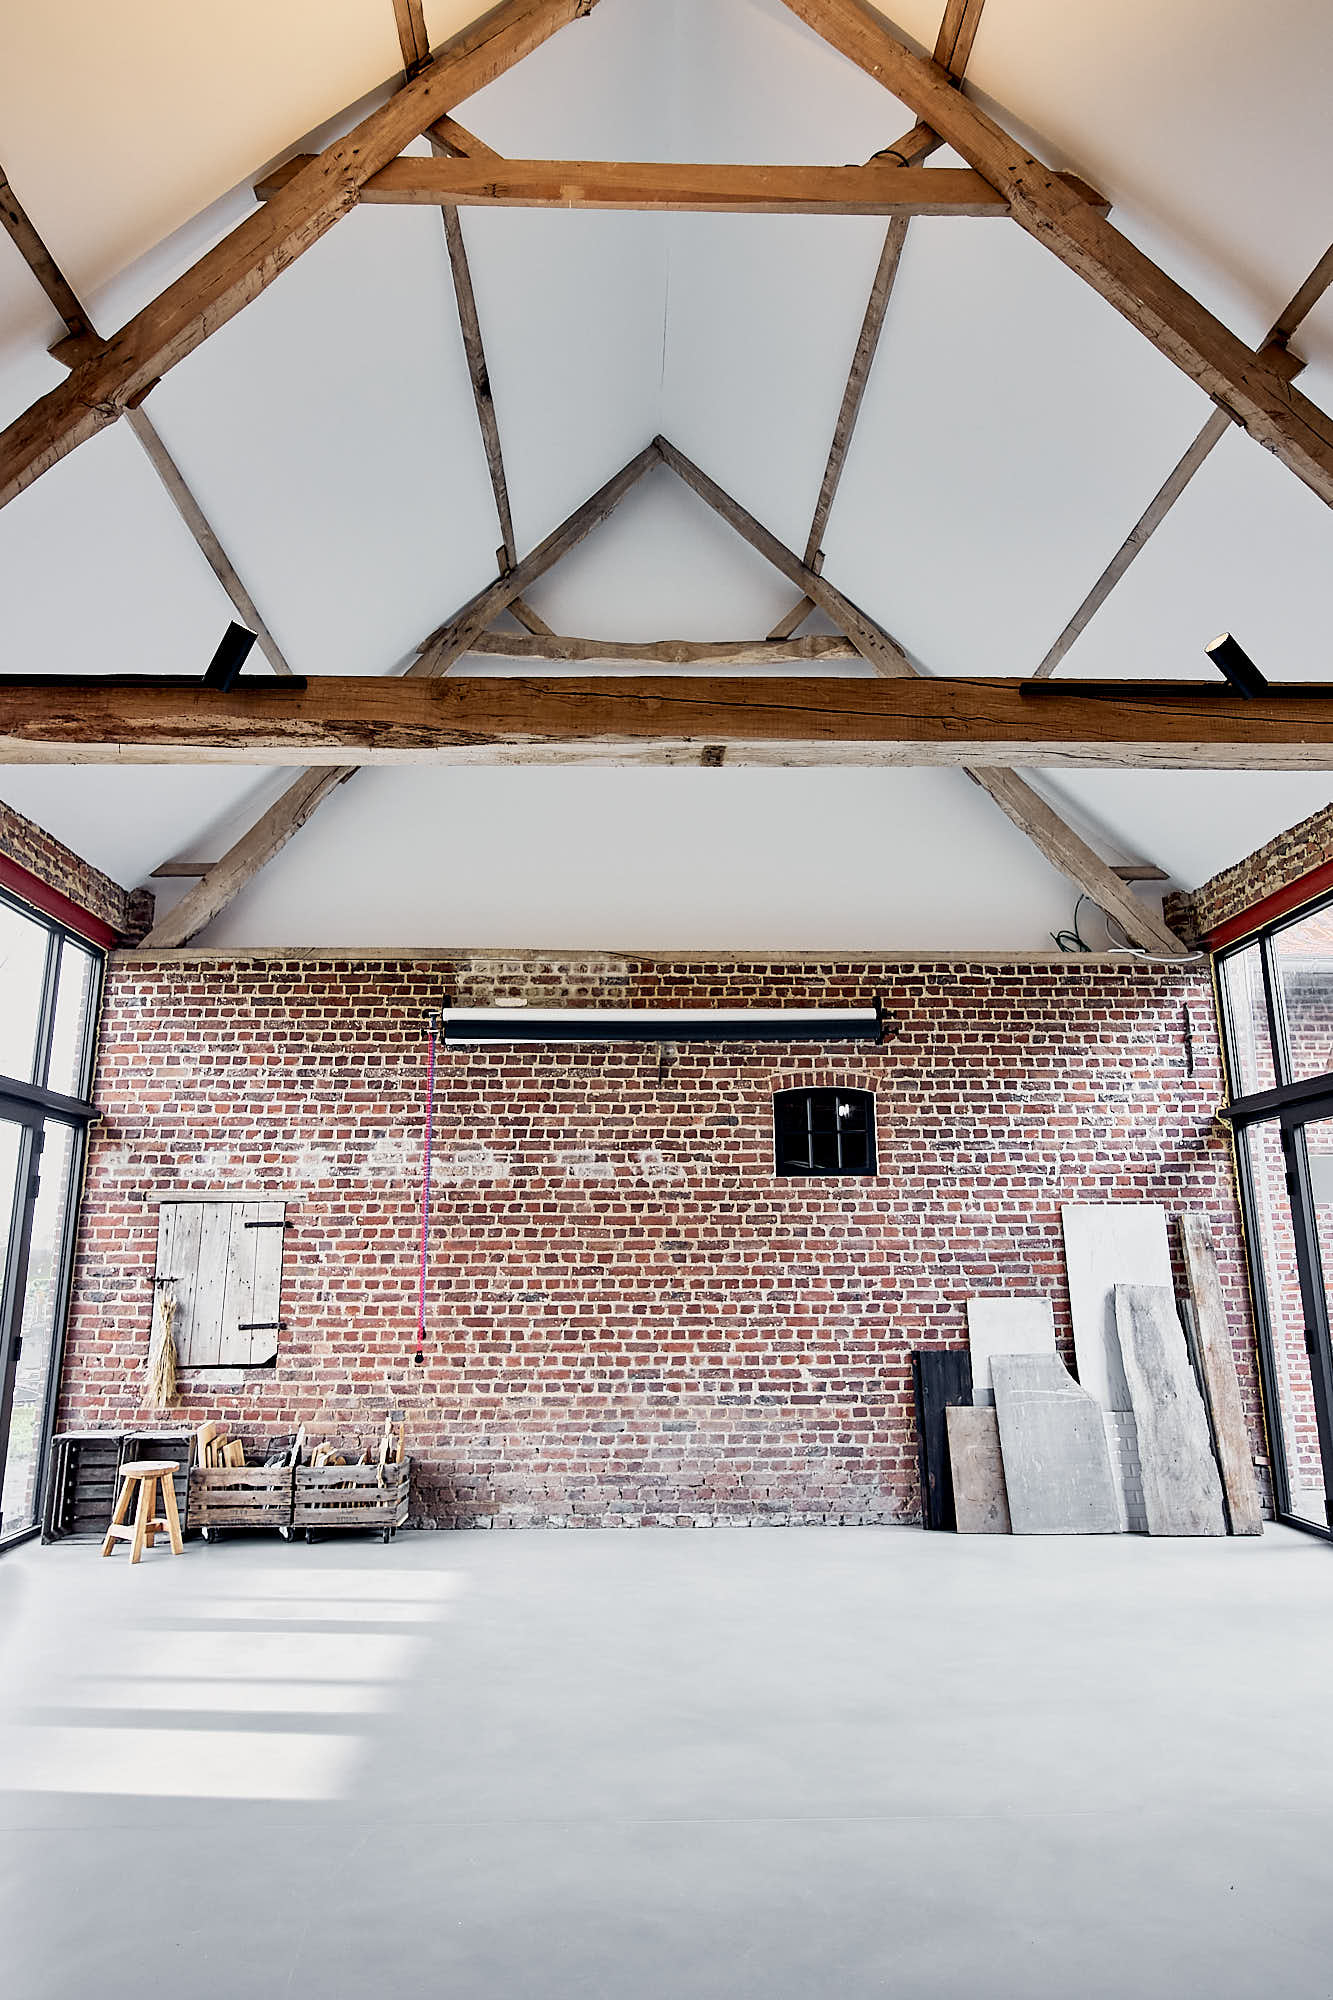 photography studio with high ceiling and brick walls